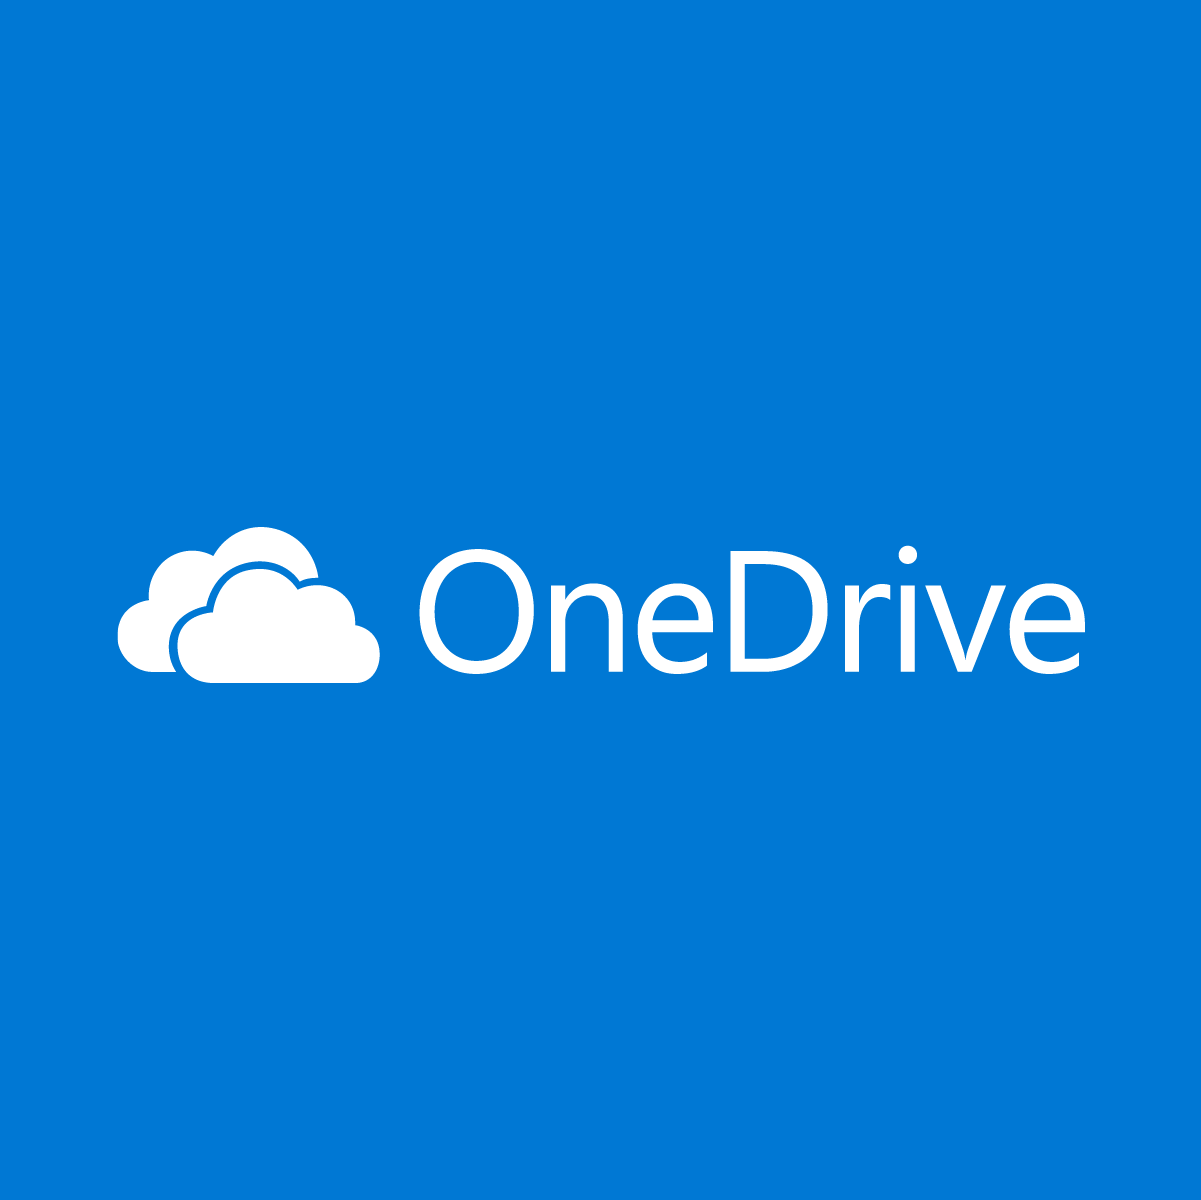 OneDrive is not accessible